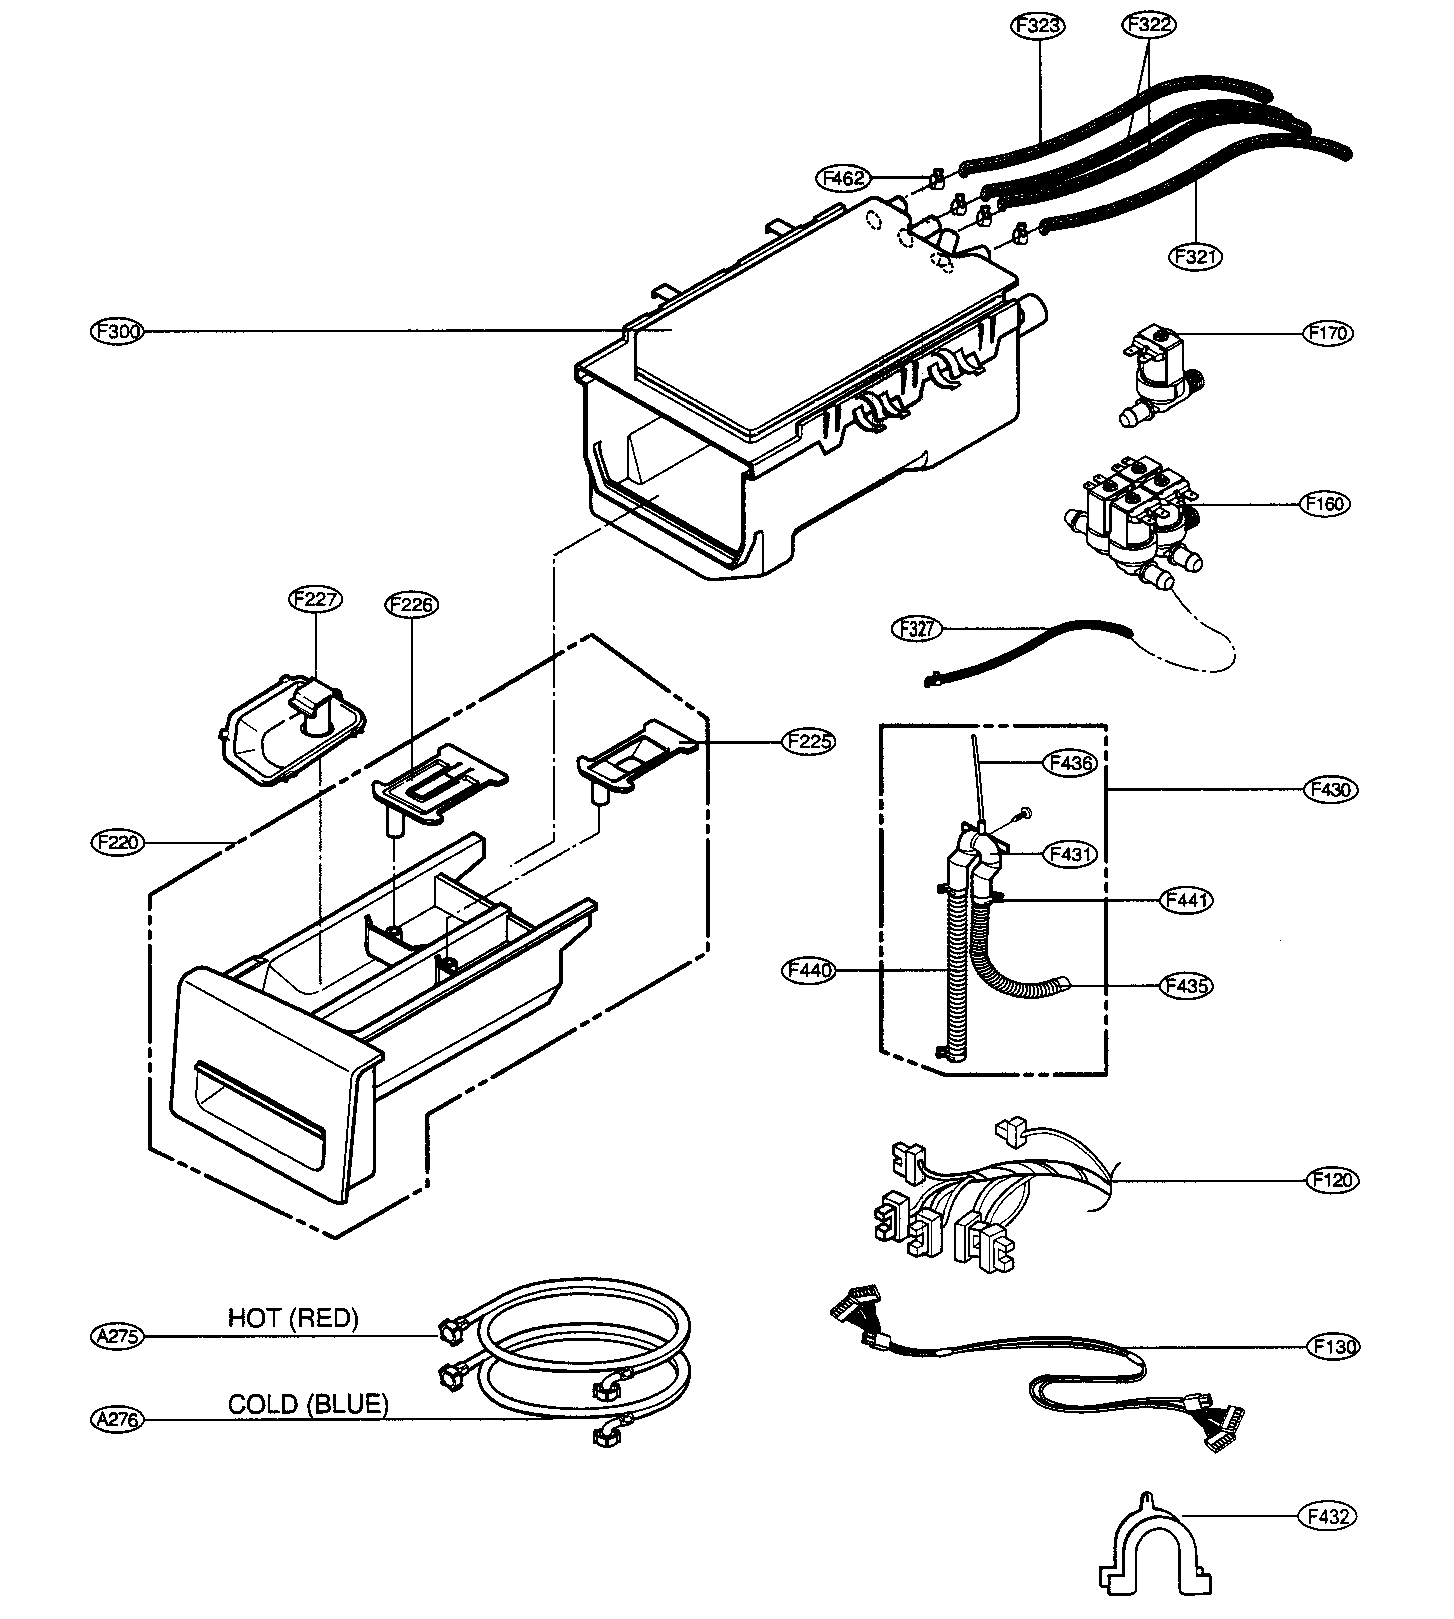 Washer Parts: Lg Washer Repair Parts